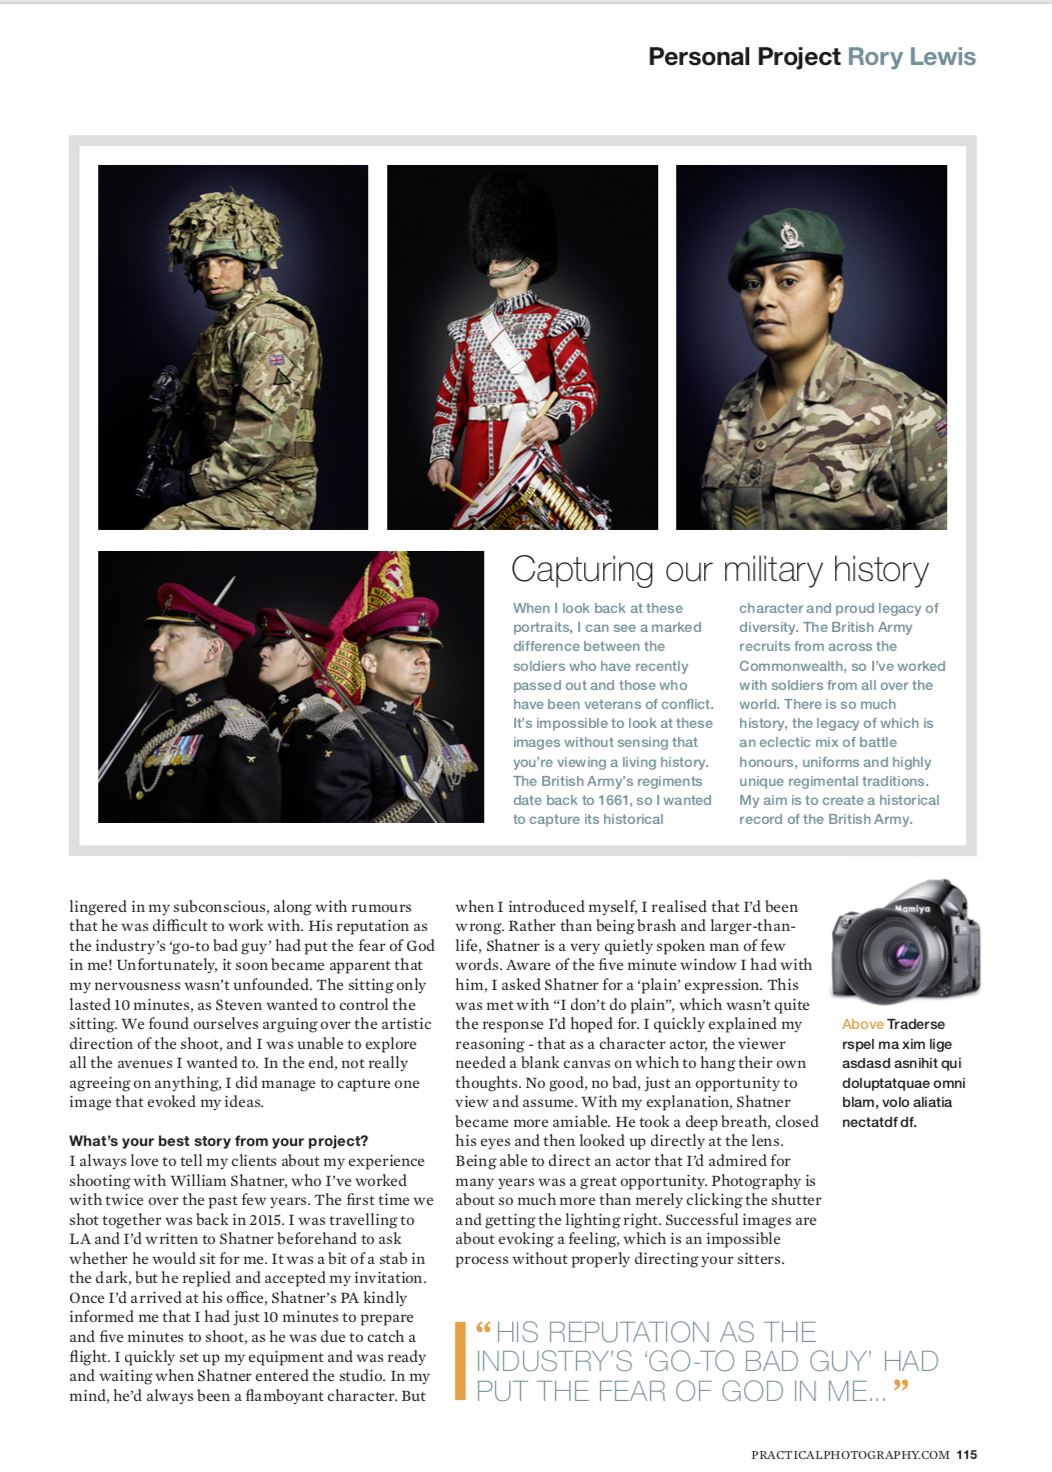 Practical Photography Magazine (Rory Lewis Photographer)